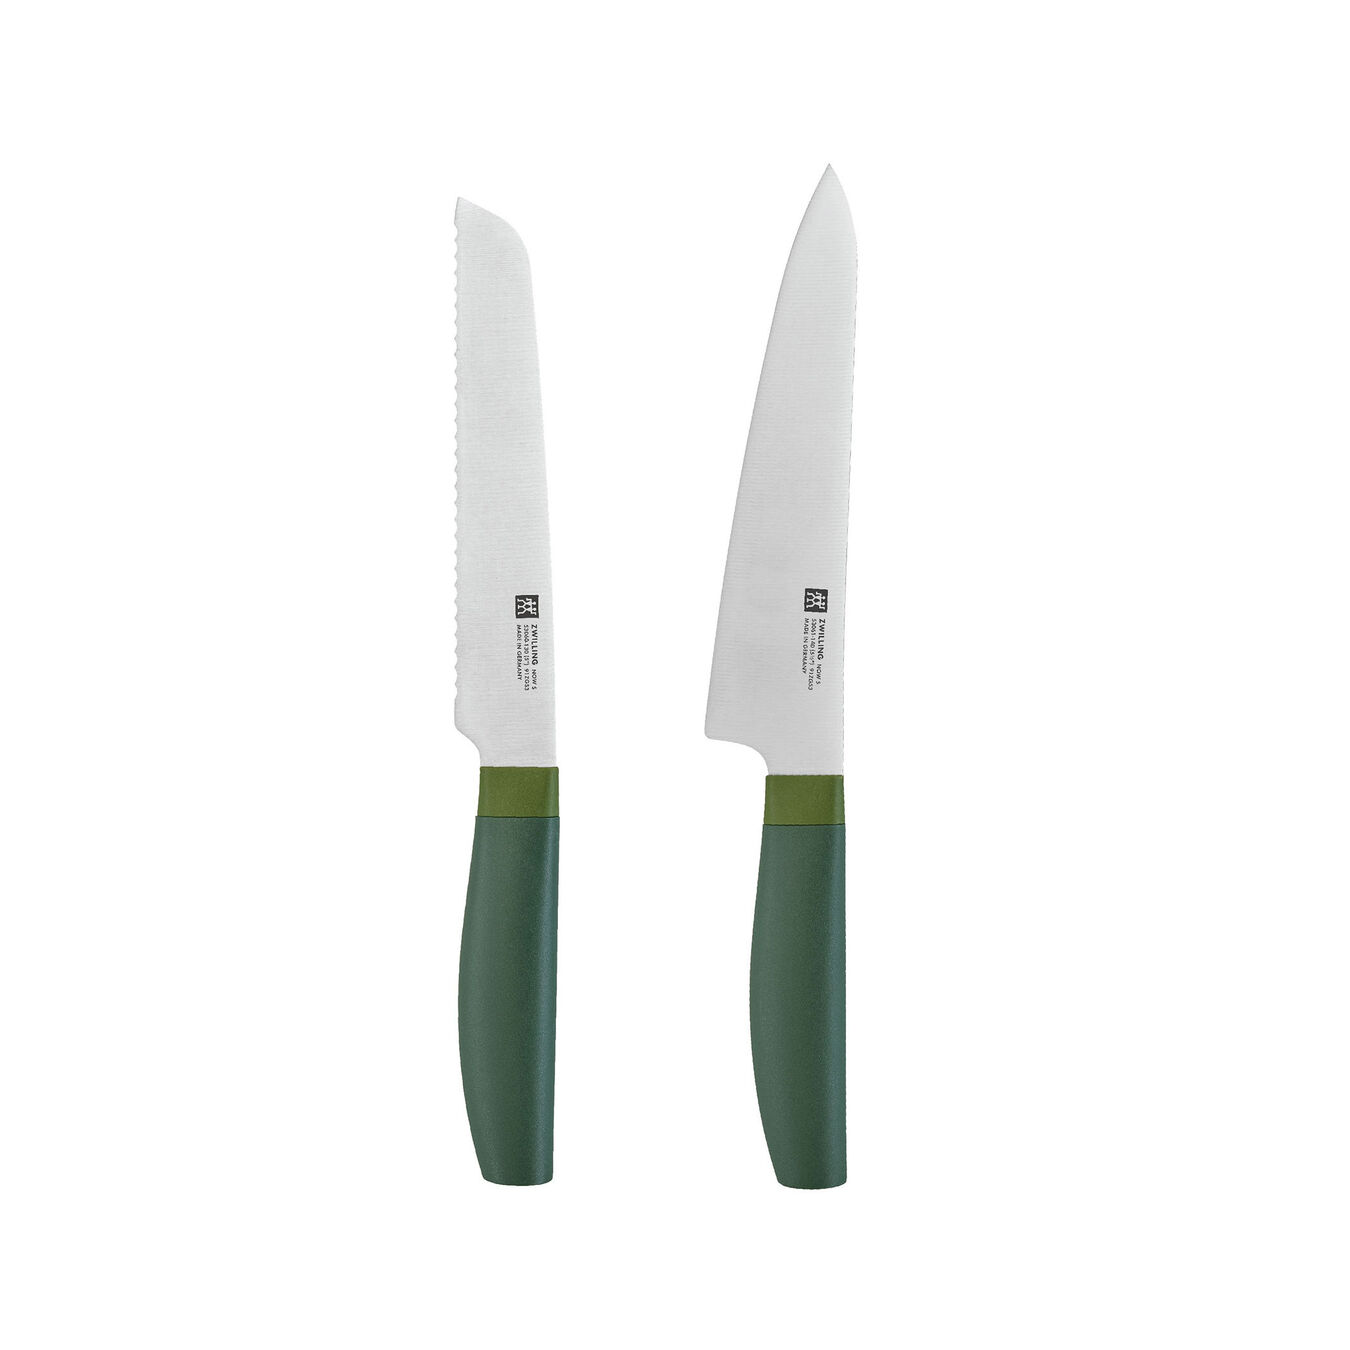 2-pc, Z Now S Completer Set, lime green,,large 1